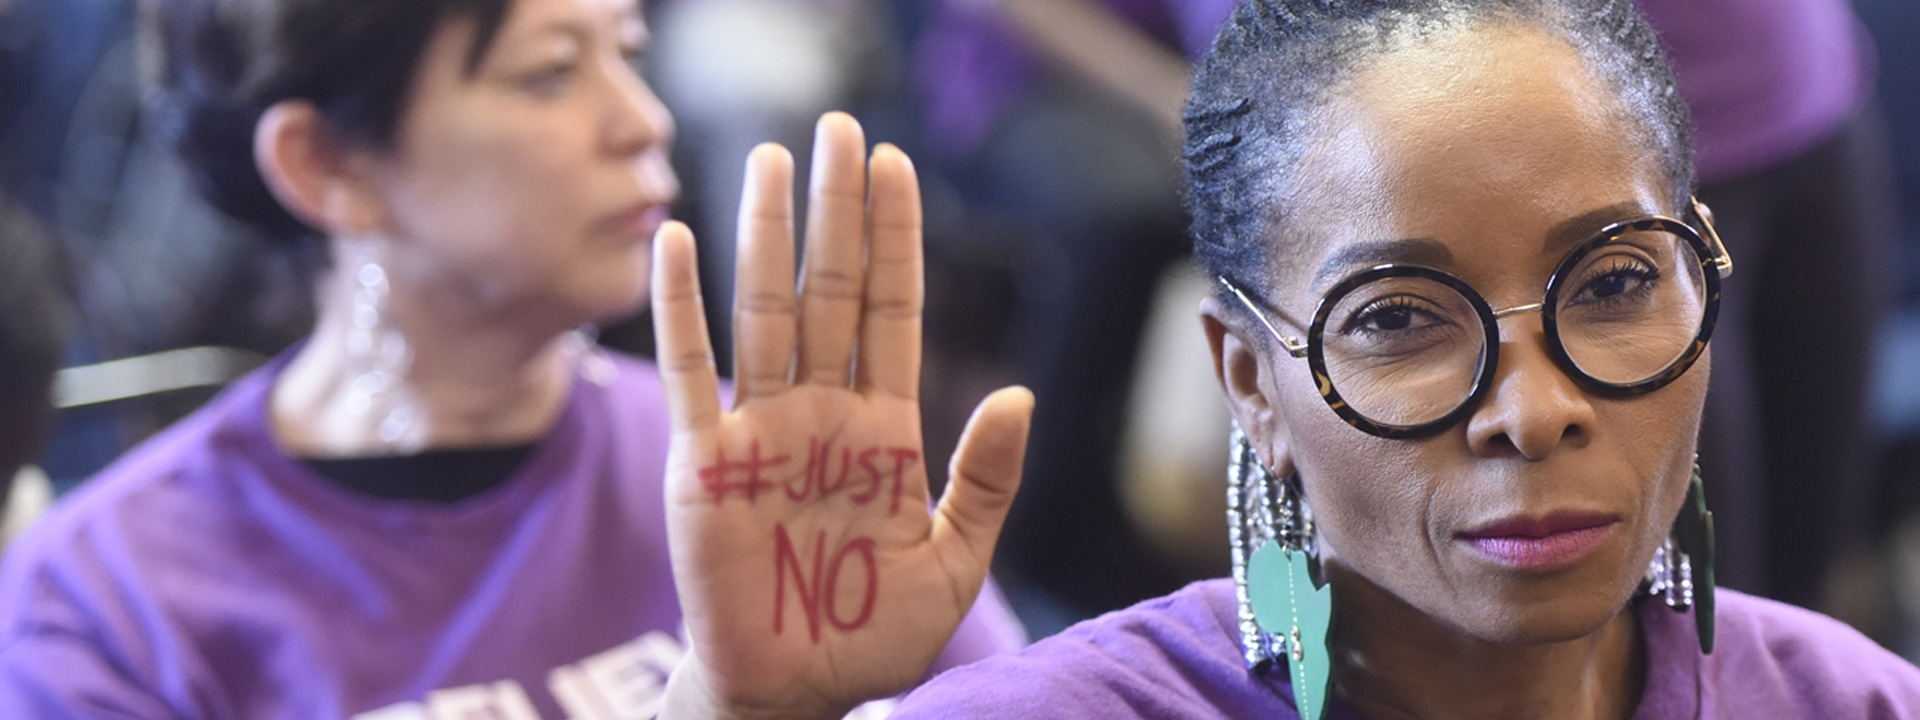 UCT says #JustNO to GBV